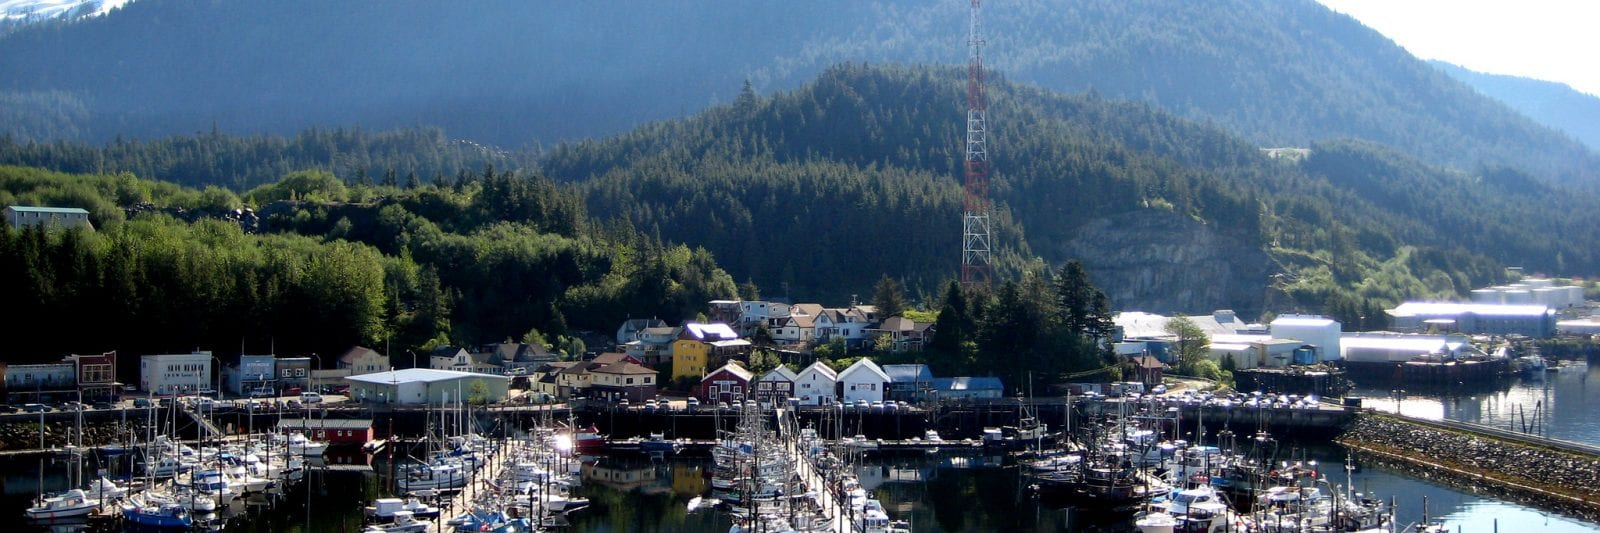 Image of the Ketchikan Port in Alaska, home to the Shelokum Hot Springs